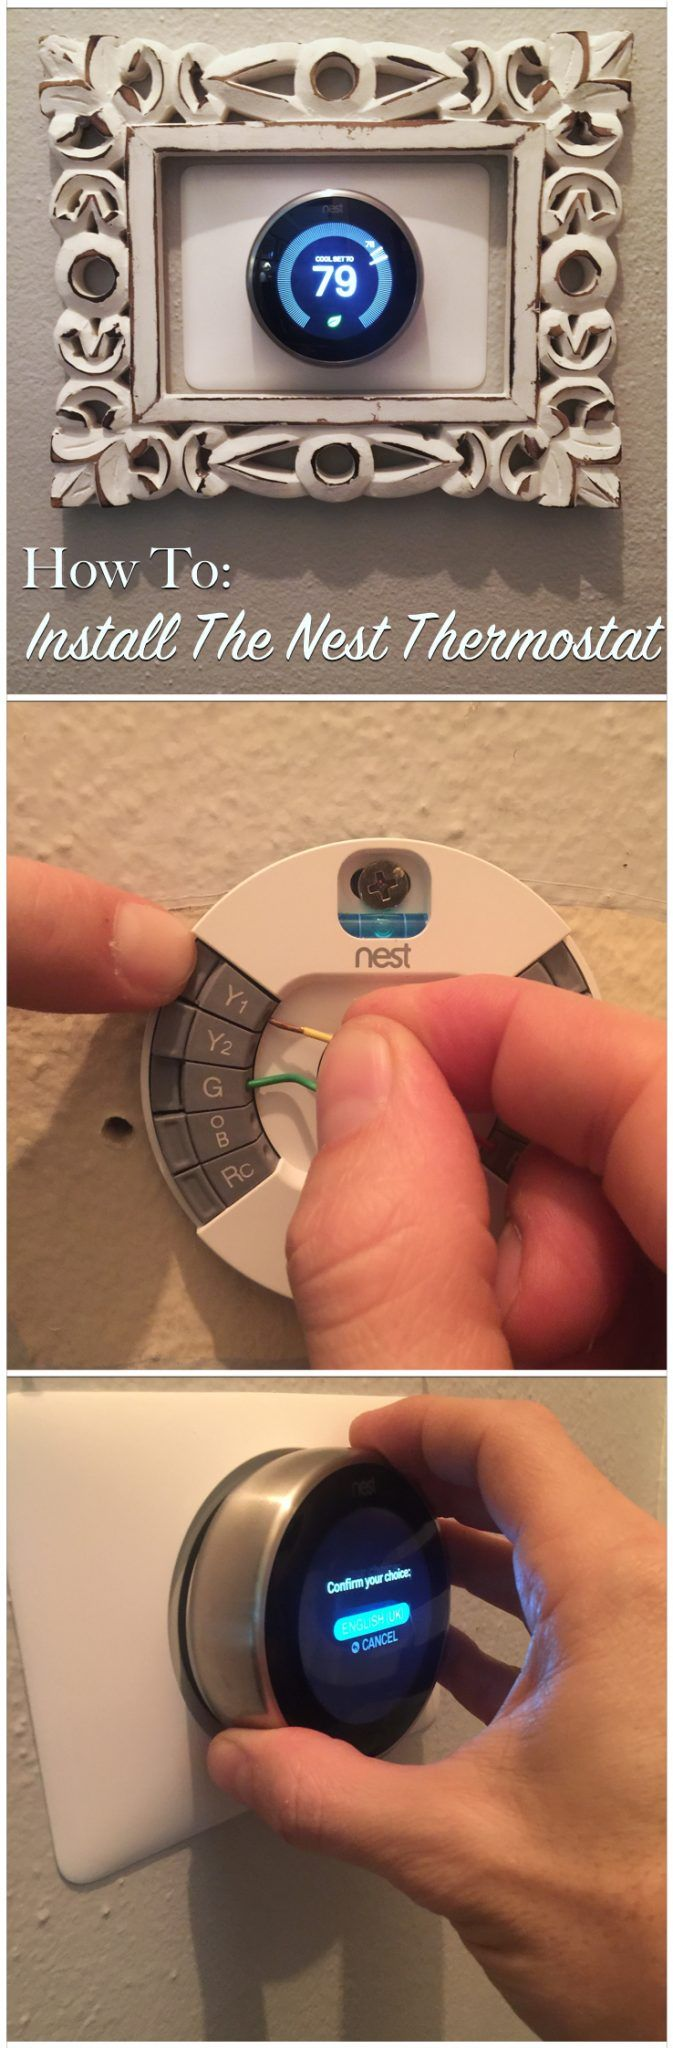 How To: Install The Nest Thermostat  Seriously. I need out over these kind of home improvements.